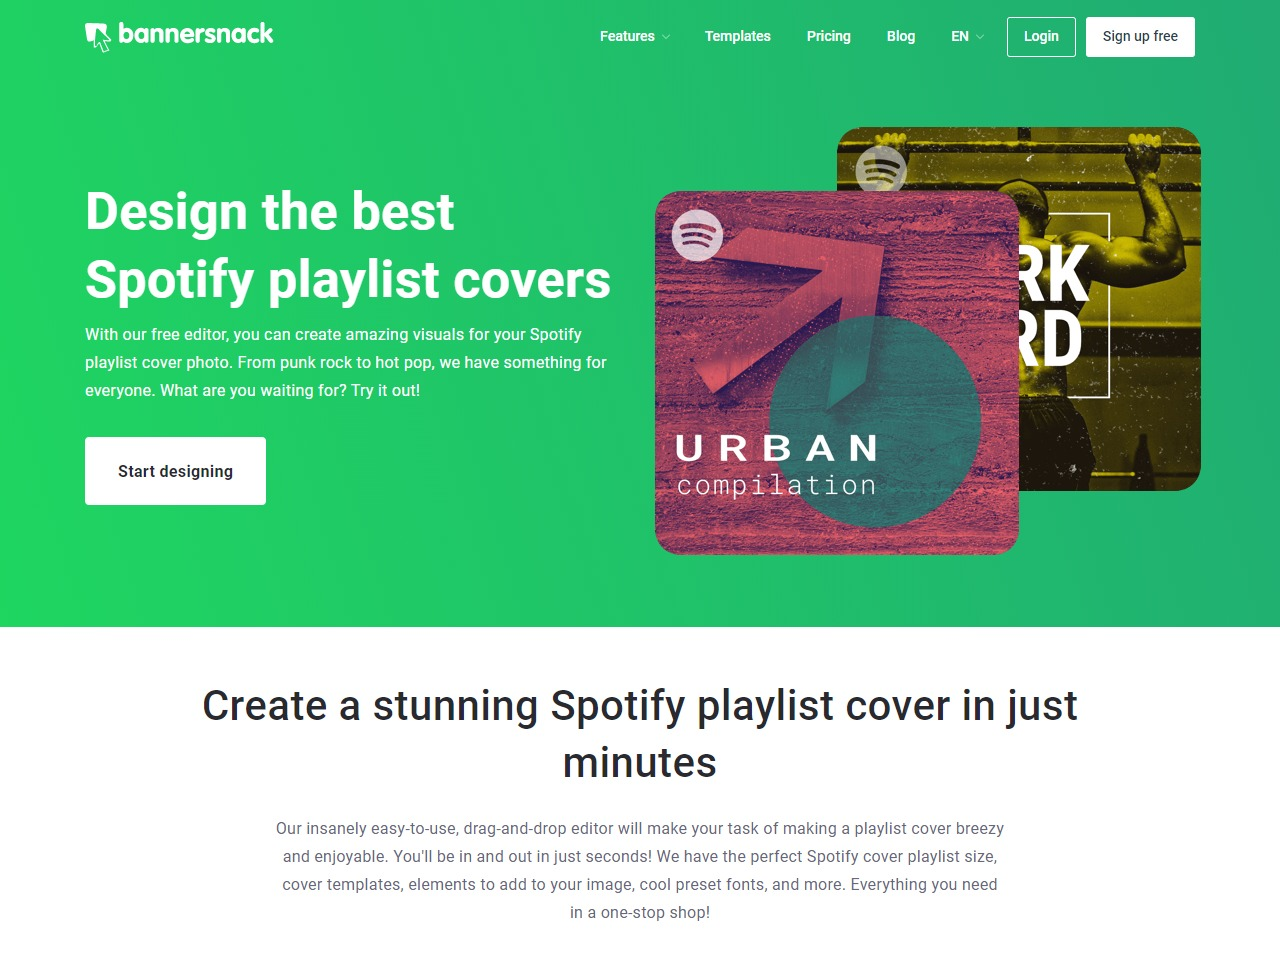 Free Spotify Playlist Cover Maker - Design the Best Playlist Covers